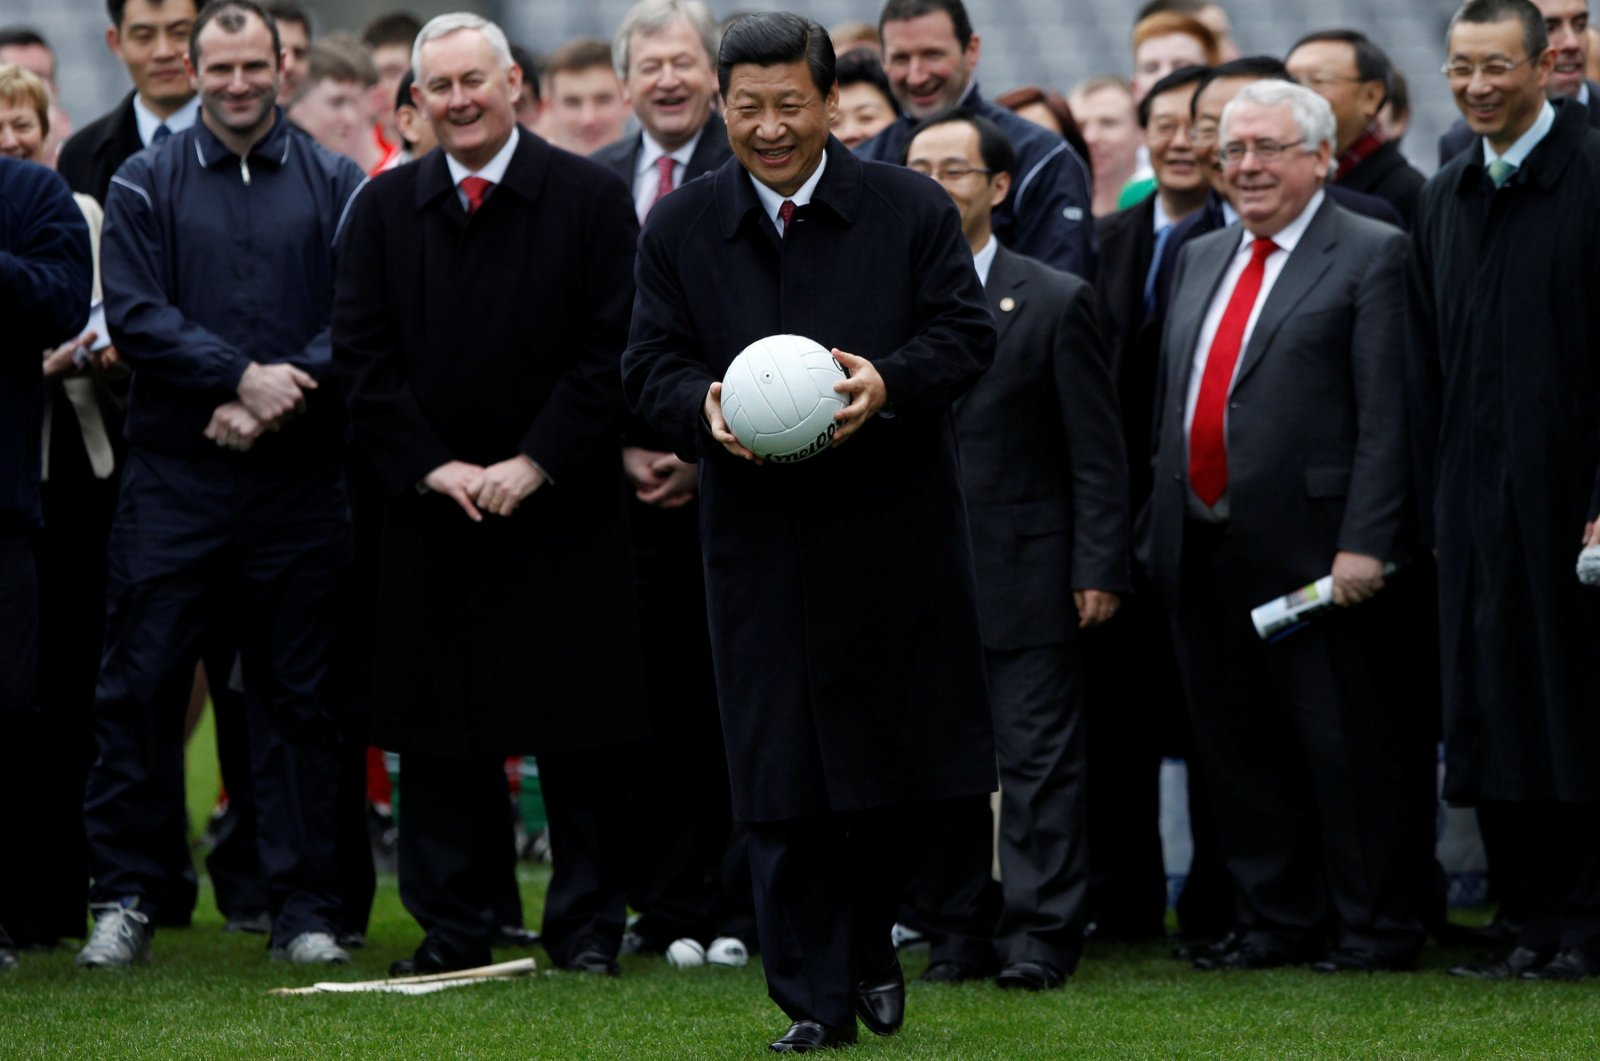 China's Vice-President Xi Jinping holds a football during a visit to Croke Park in Dublin, Ireland, Feb. 19, 2012. (Reuters Photo)